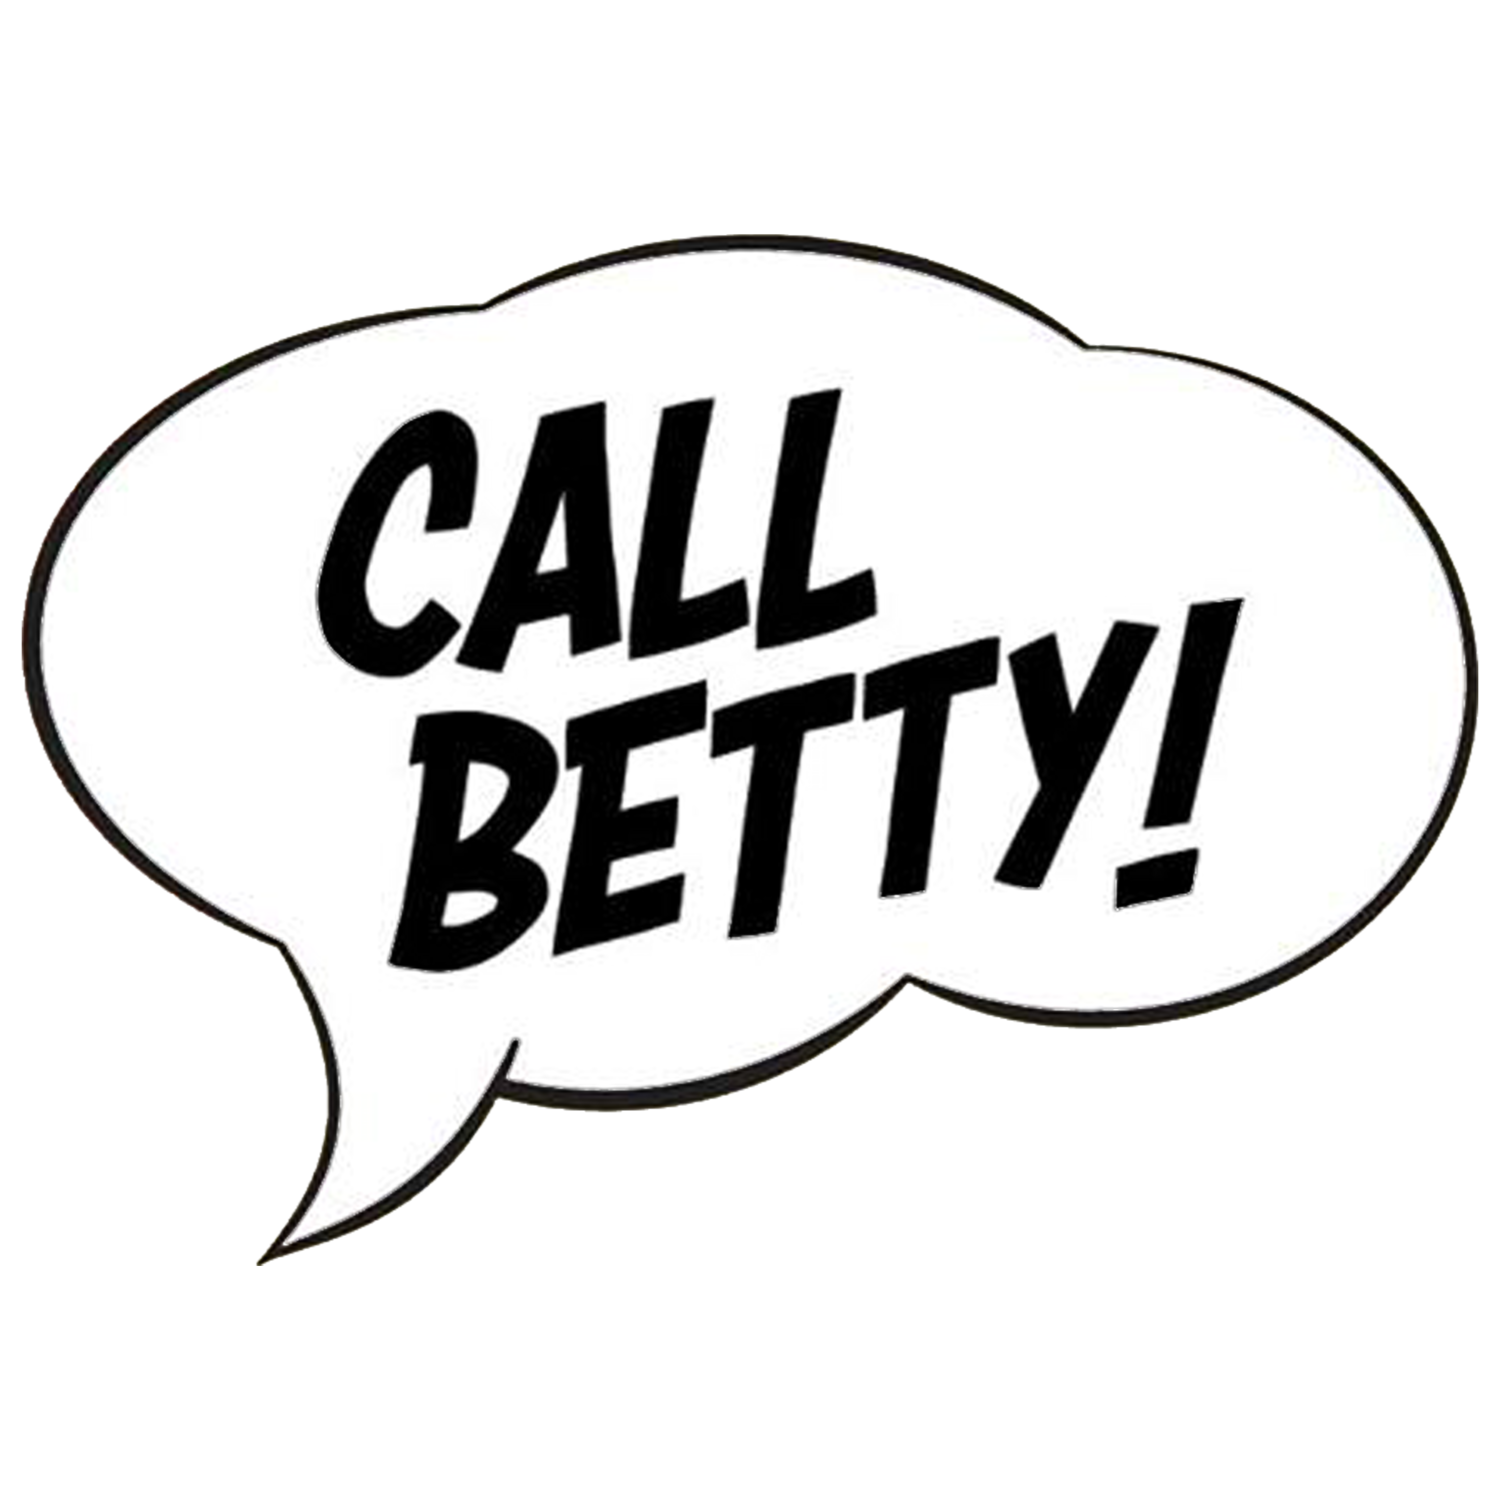 Call Betty